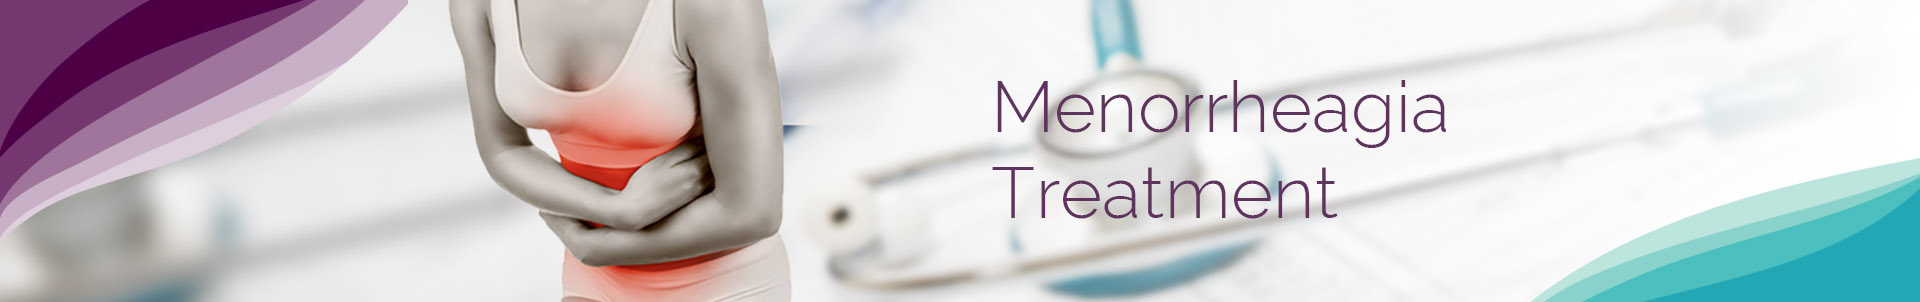 Menorrheagia Treatment at Apollo Cradle